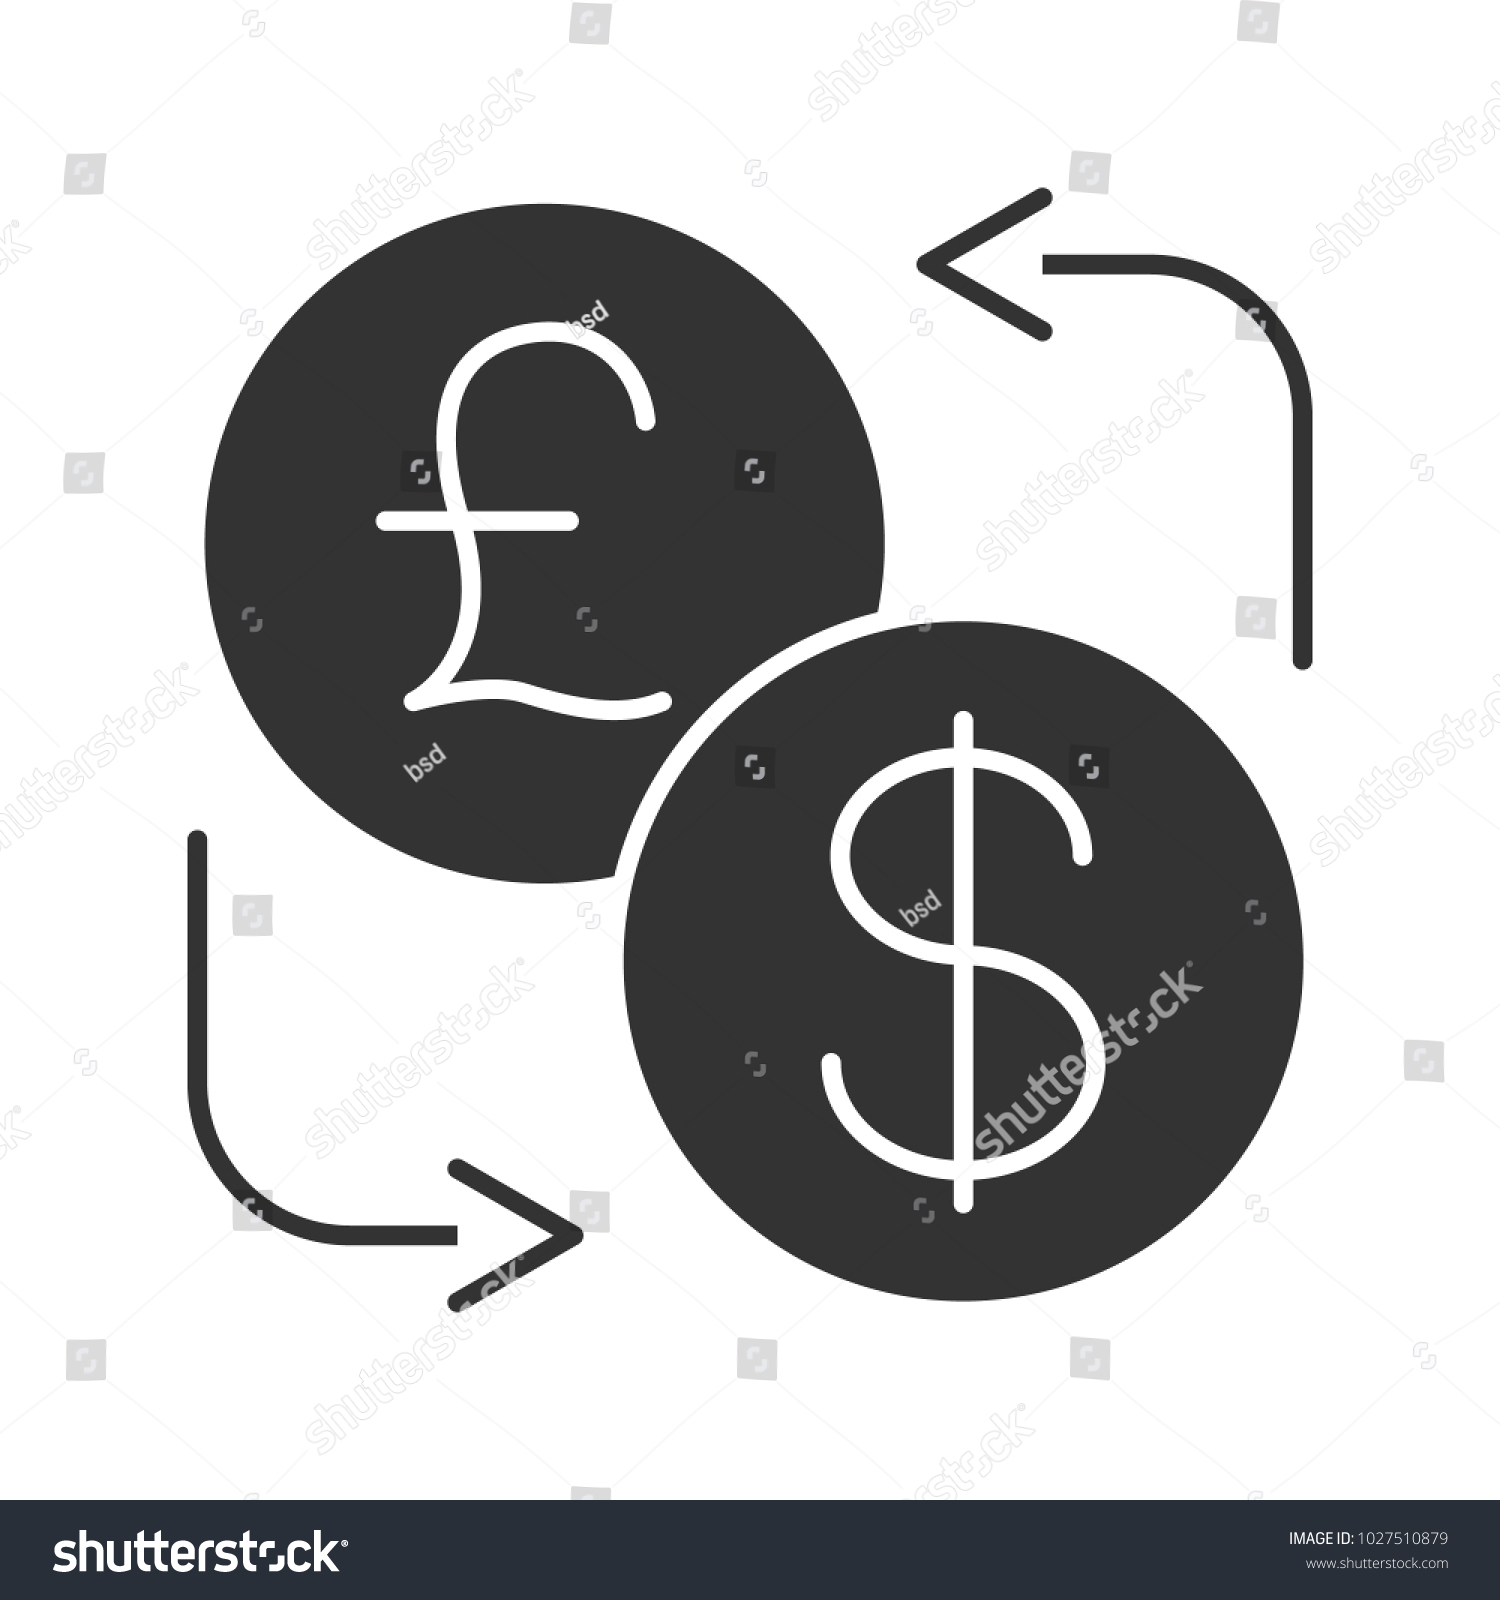 Dollar British Pound Currency Exchange Glyph Stock Vector Royalty